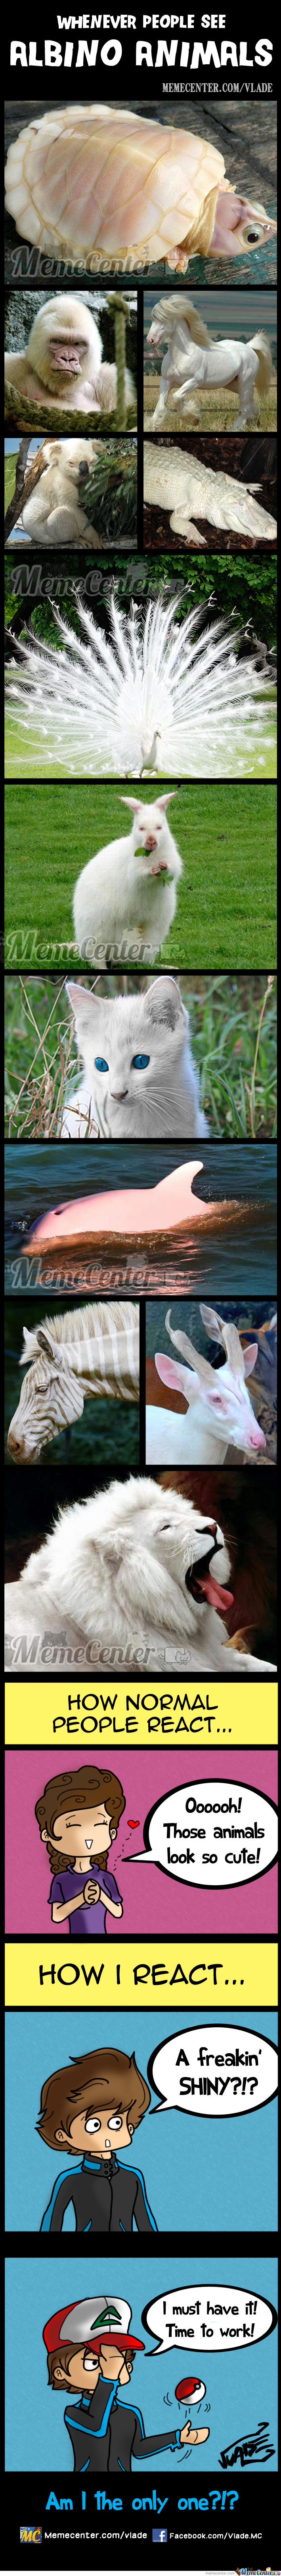 Albino Animals